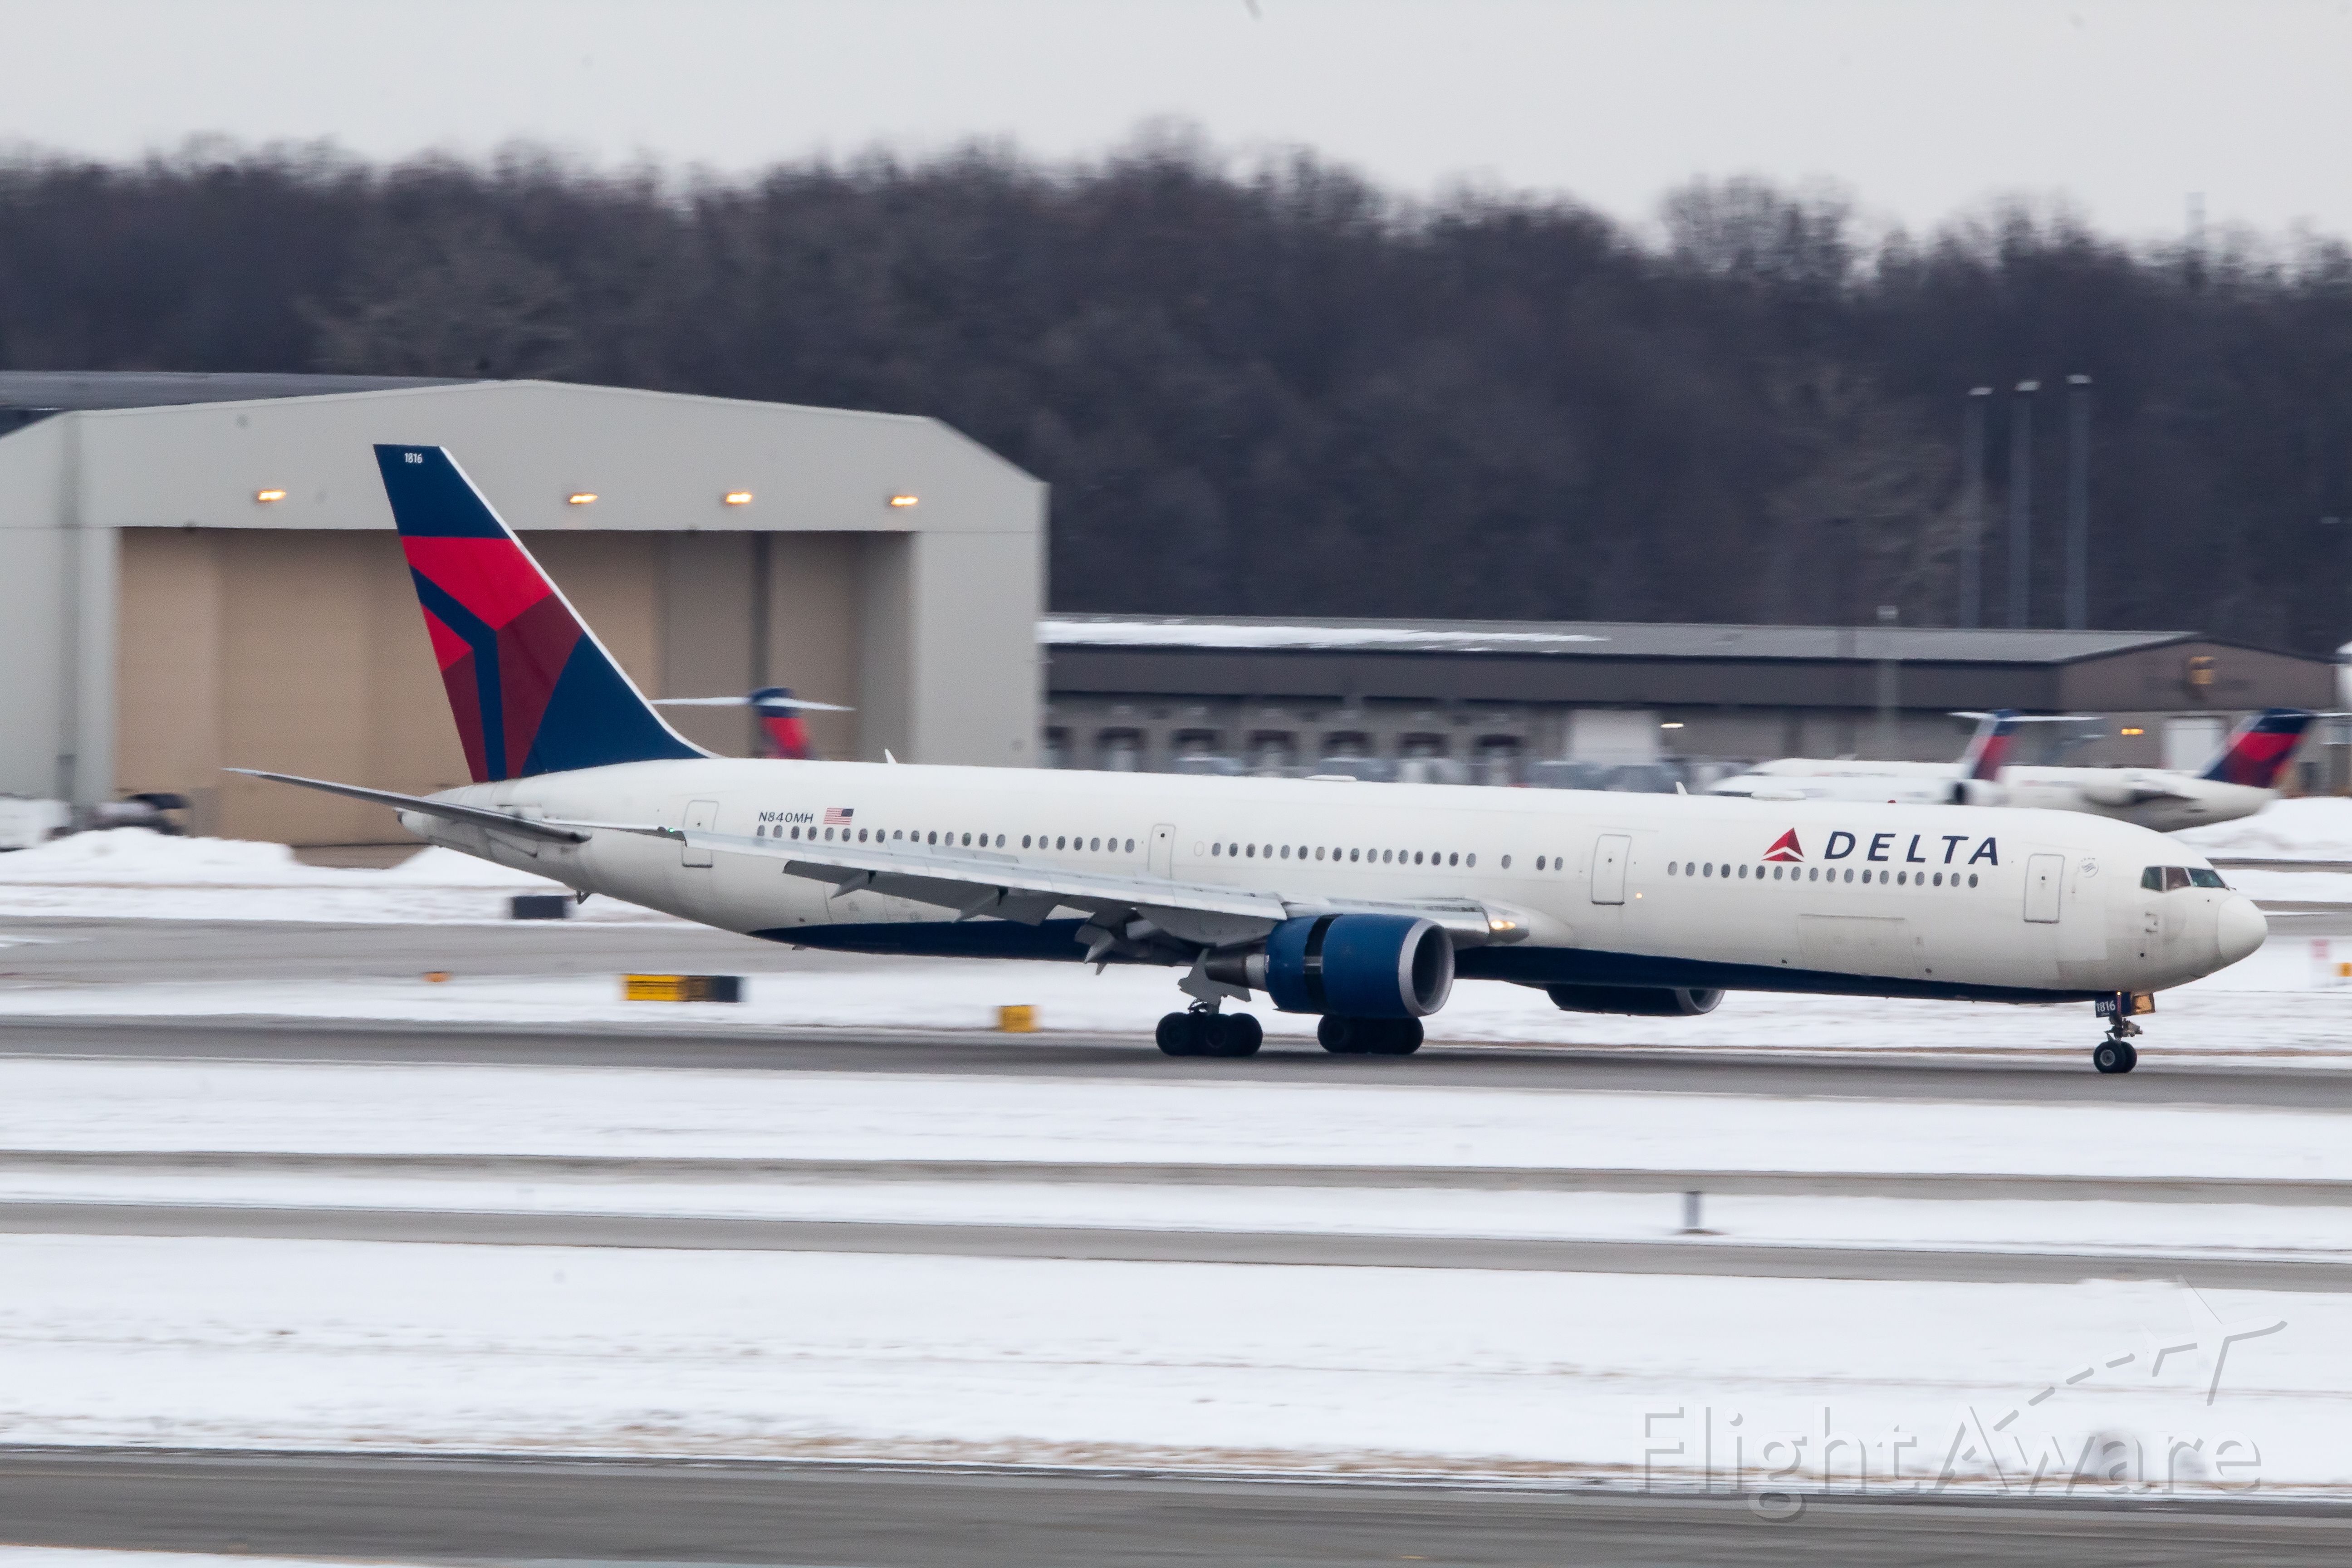 BOEING 767-400 (N840MH) - Delta 767-400 slowing down on 21L after its domestic flight from Fort Myers (RSW) Florida.